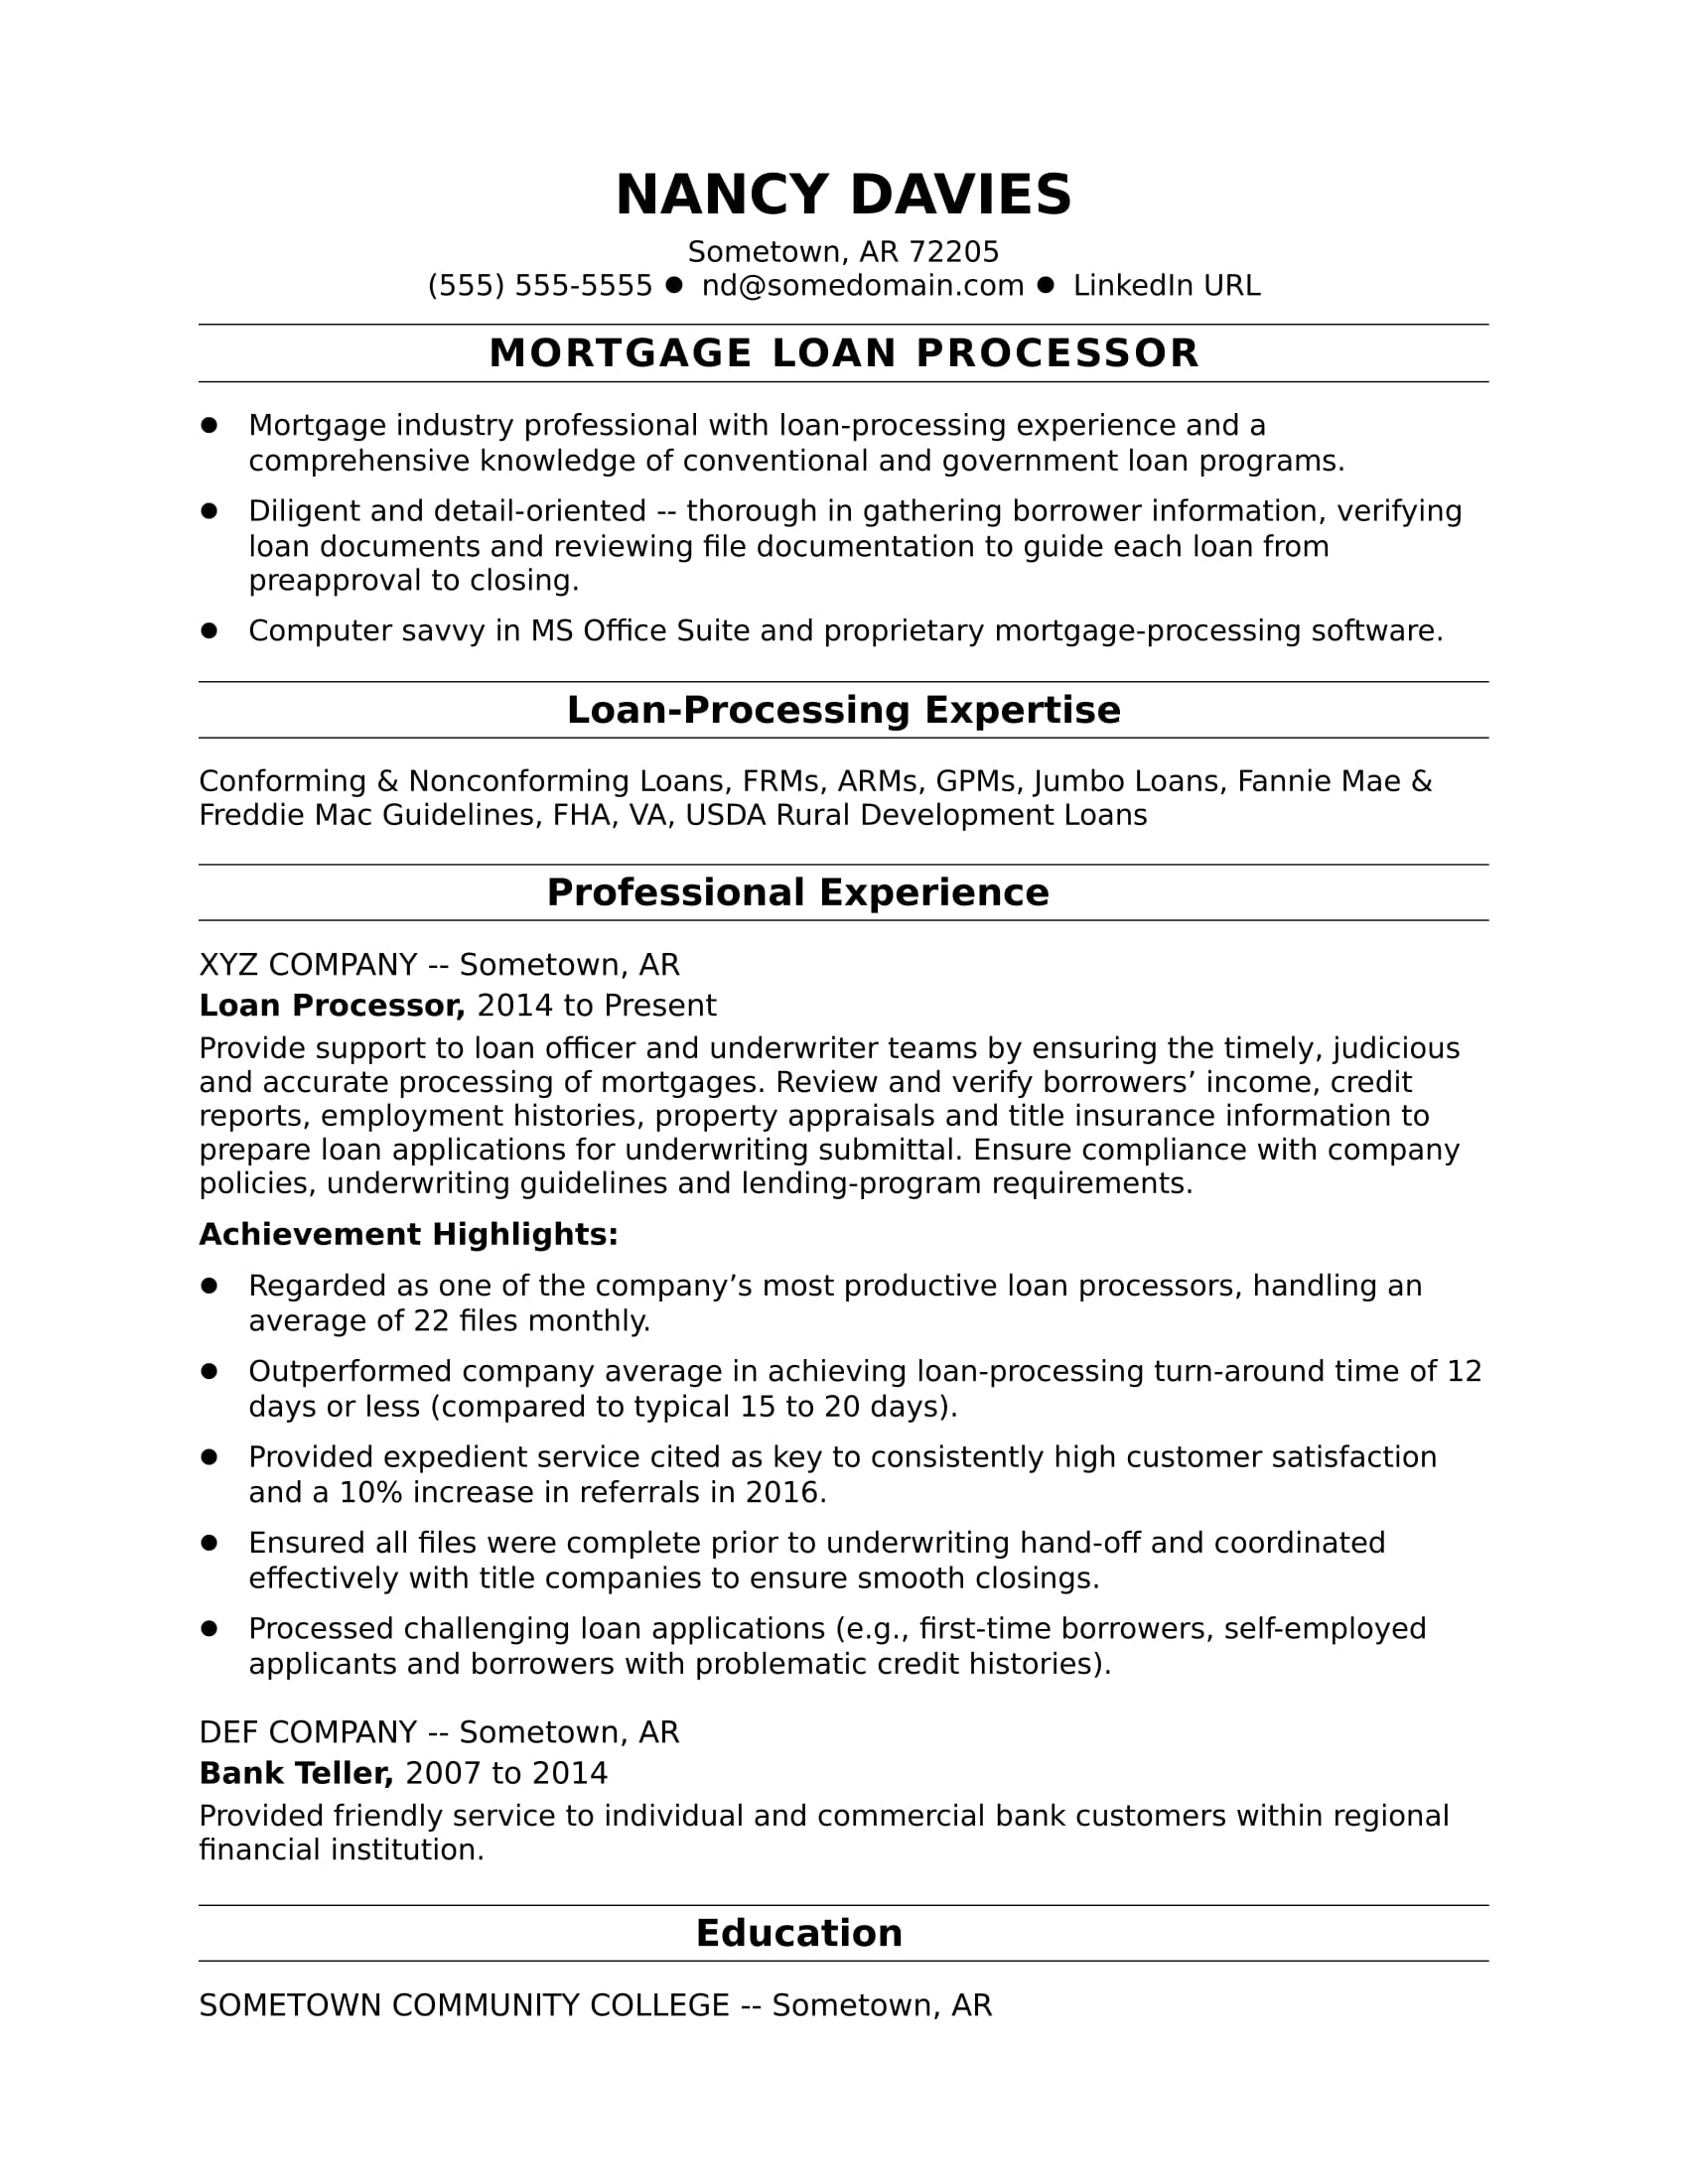 resume Software Knowledge On Resume mortgage loan processor resume sample monster com for a processor